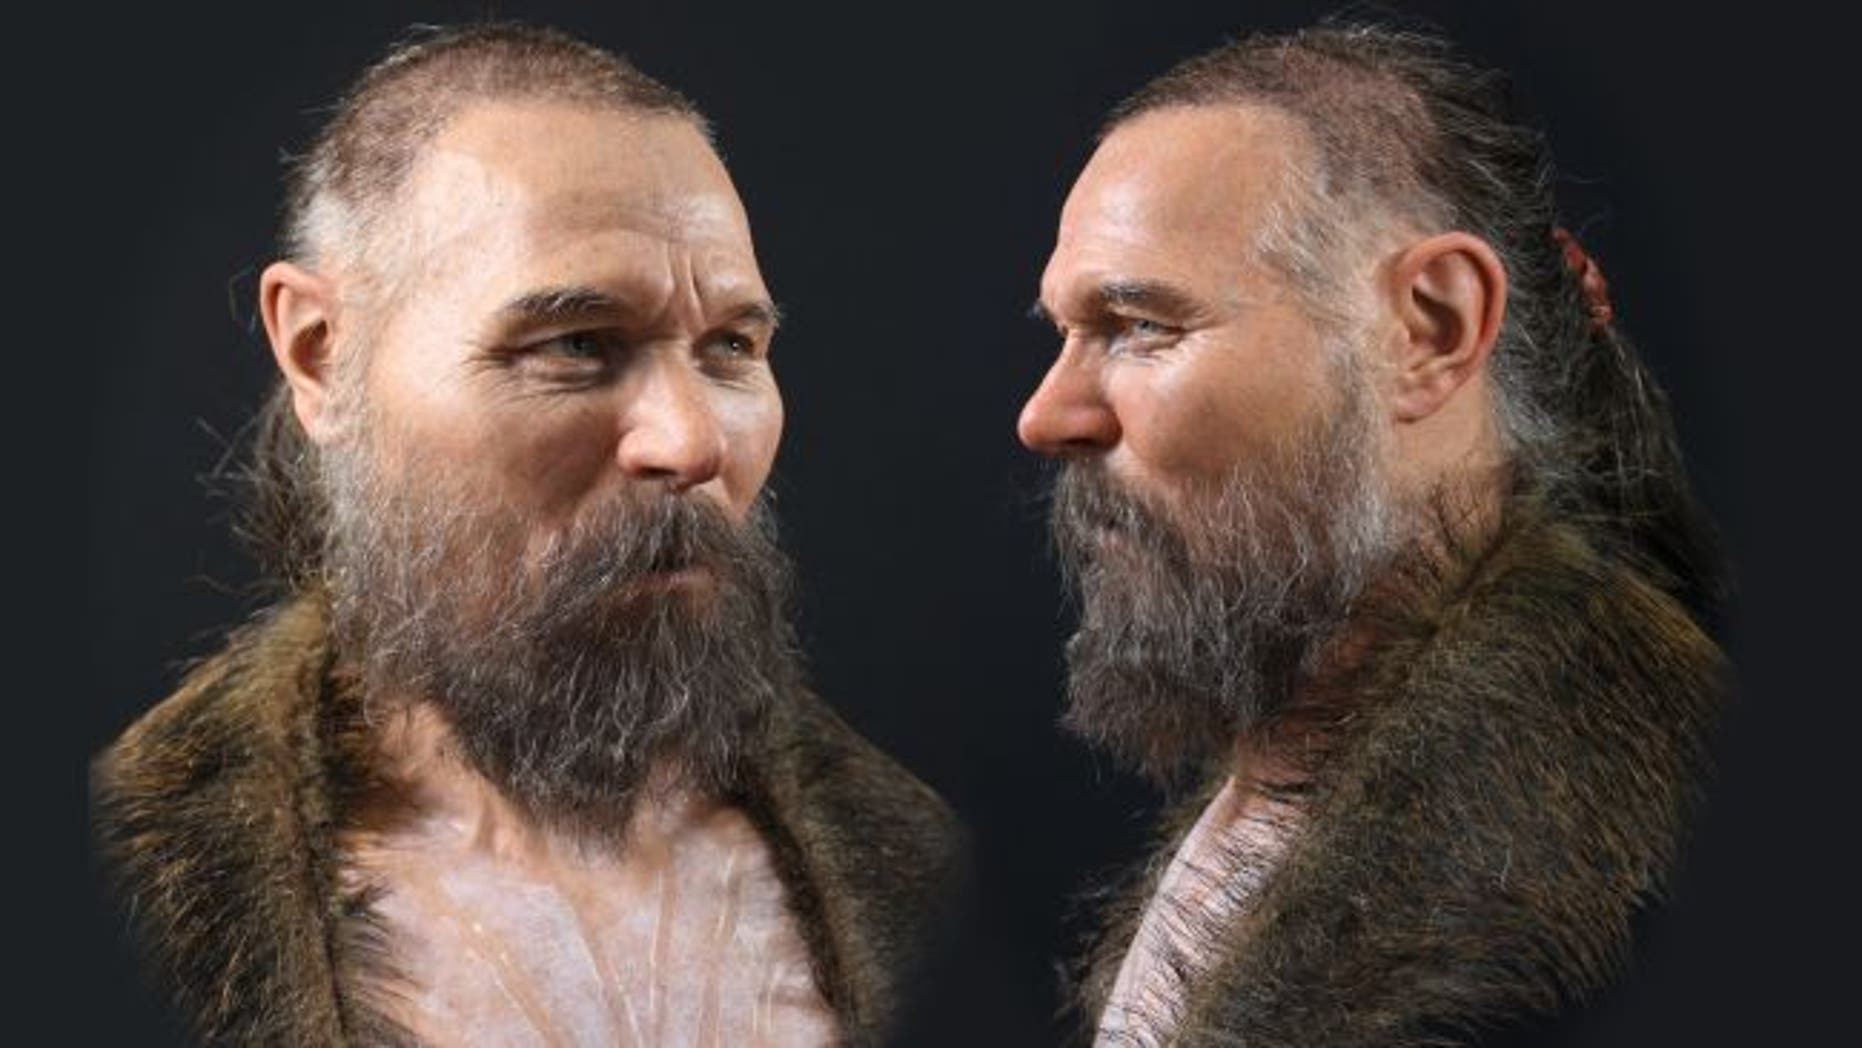 In this reconstruction, the Mesolithic man, who died in his 50s, wears a wild boar skin. (Credit: Oscar Nilsson)